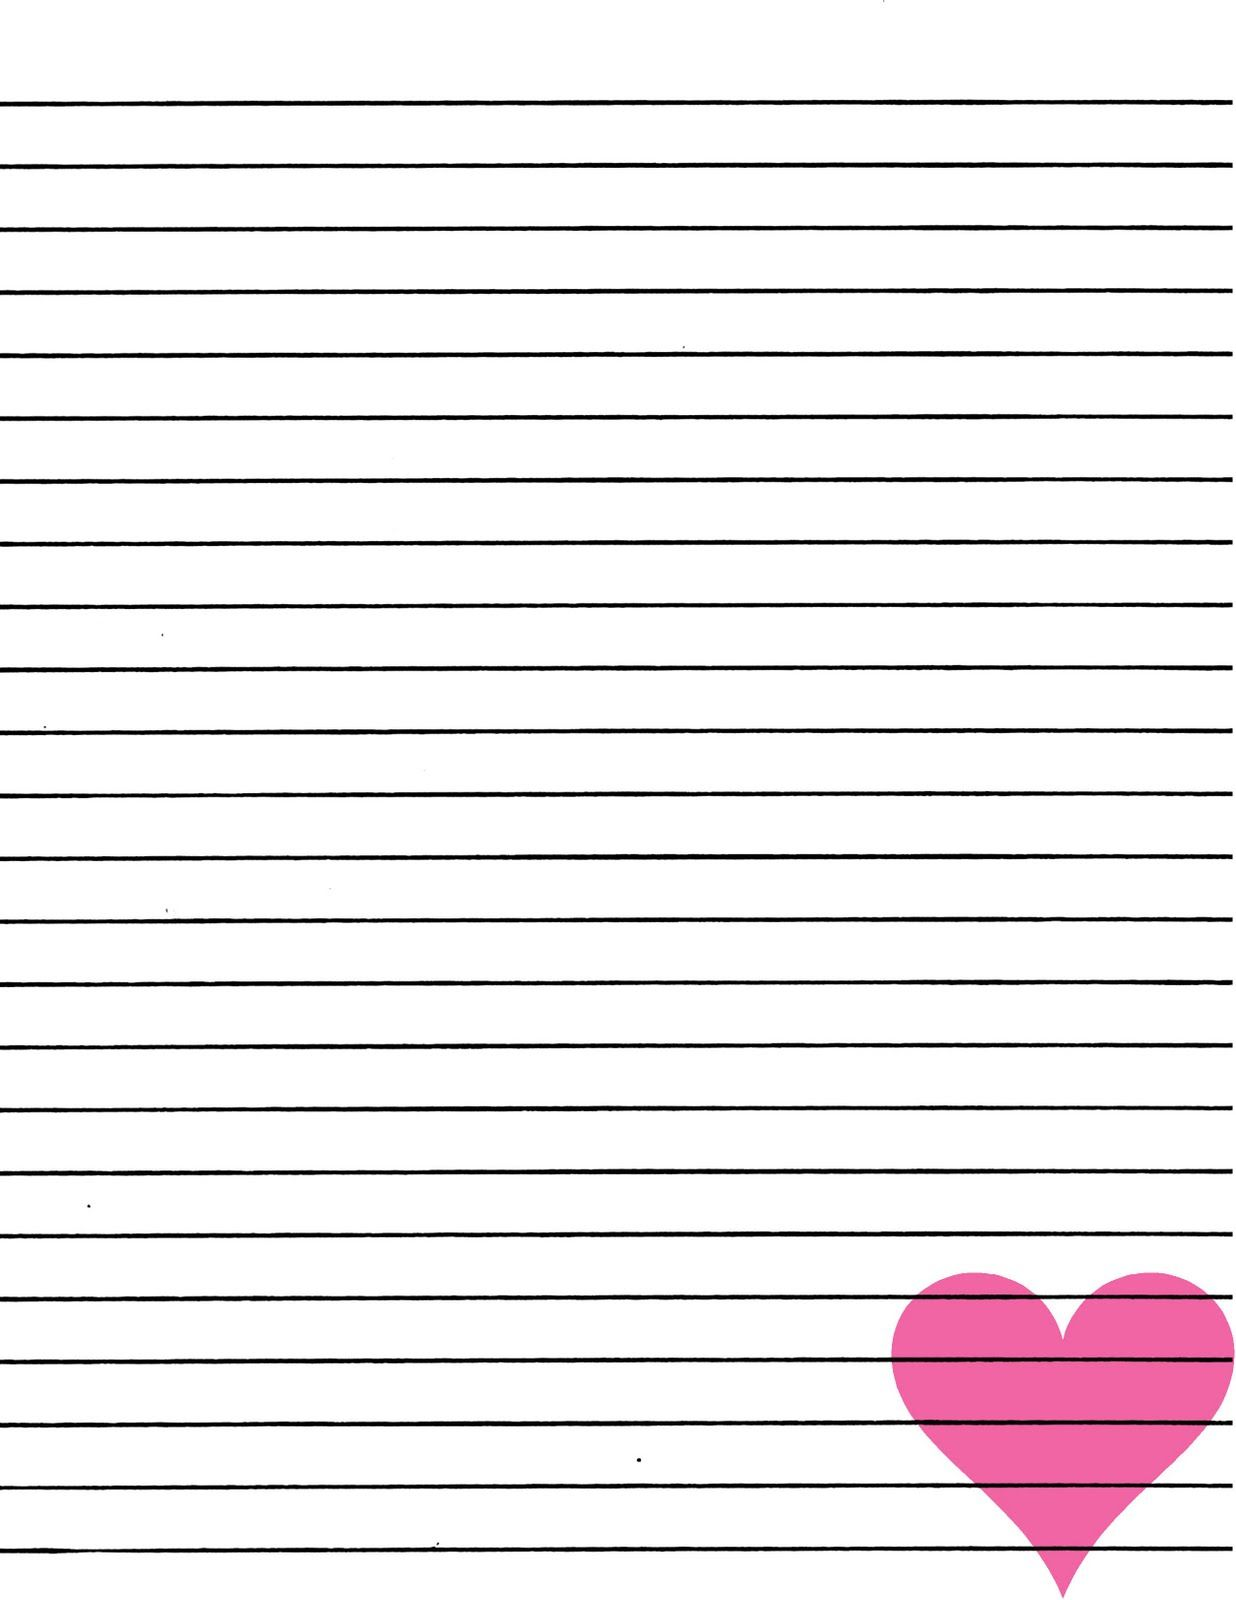 image relating to Printable Paper With Lines named Printable Paper Protected retail store clean